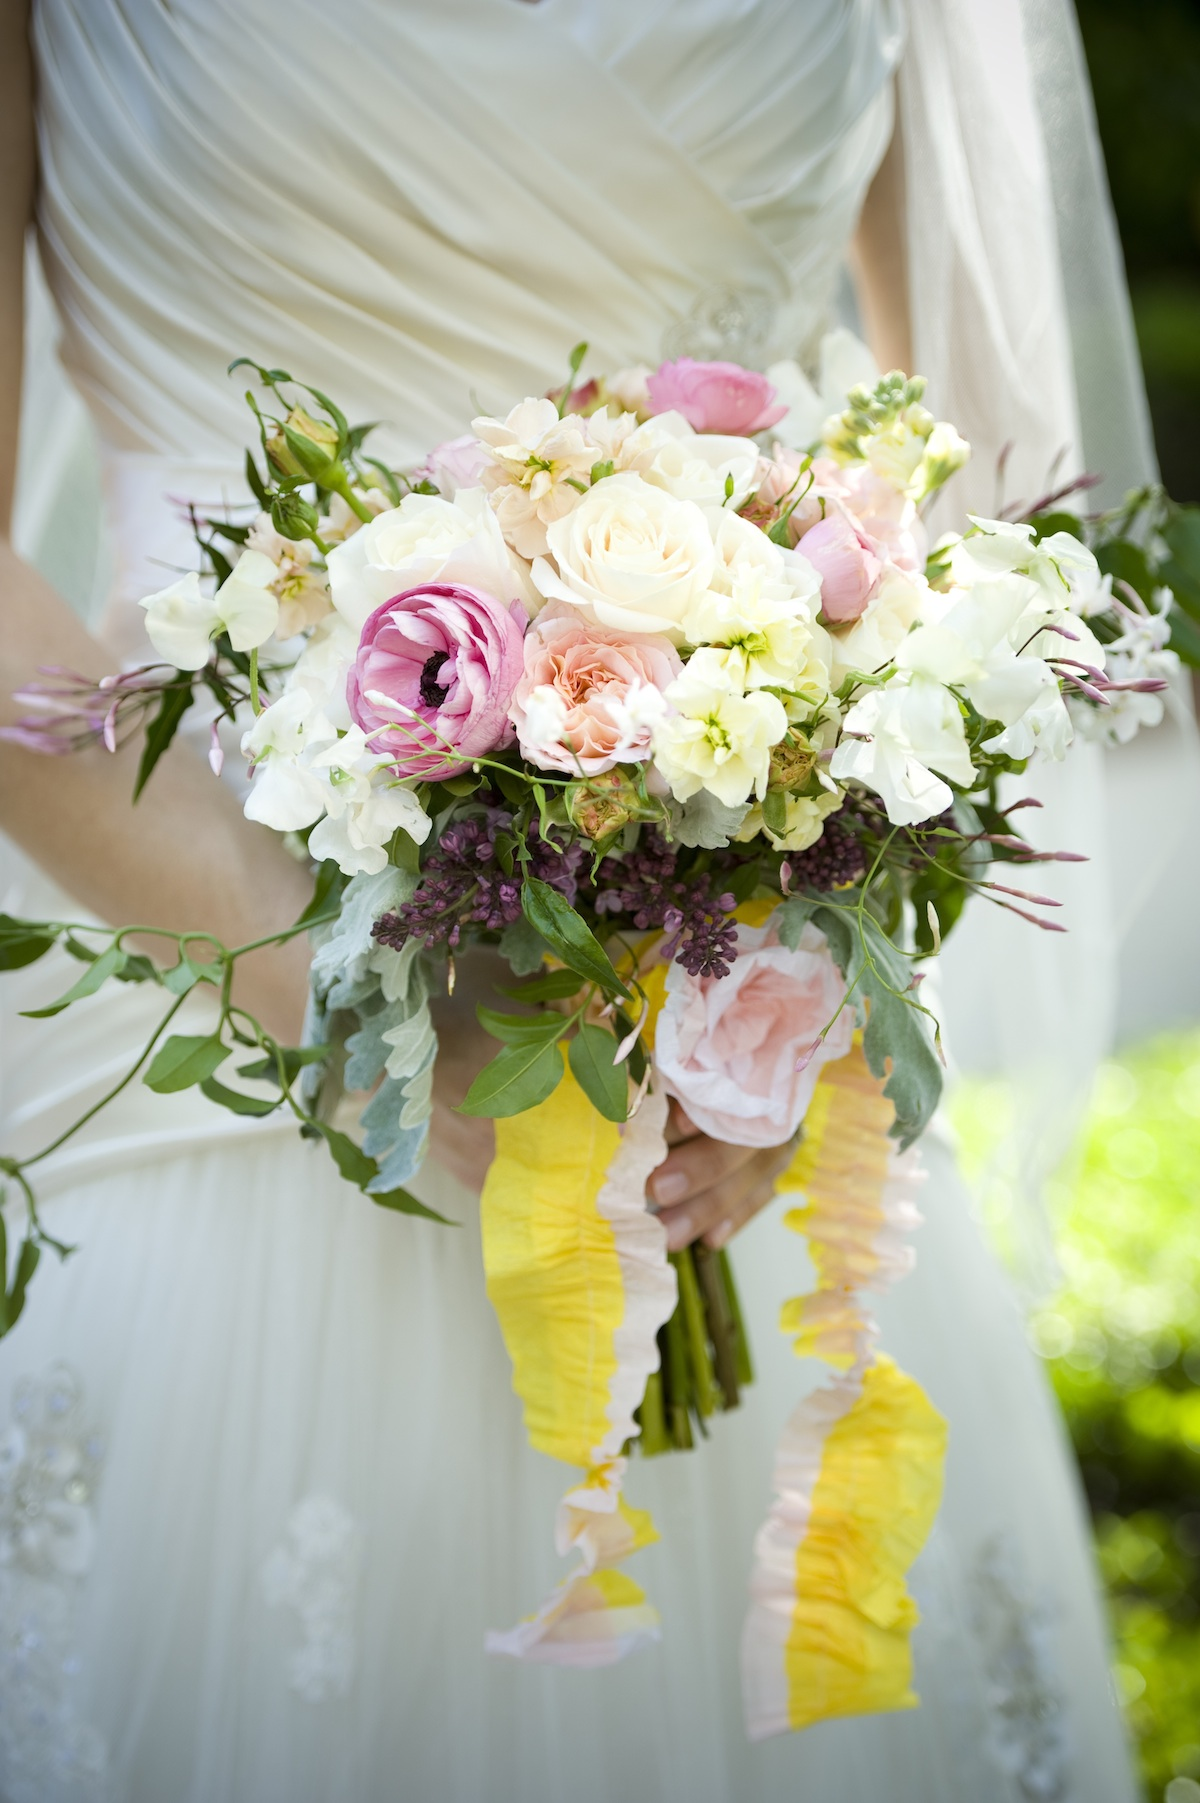 Whimsical-outdoor-wedding-garden-venue-romantic-bridal-bouquet.original